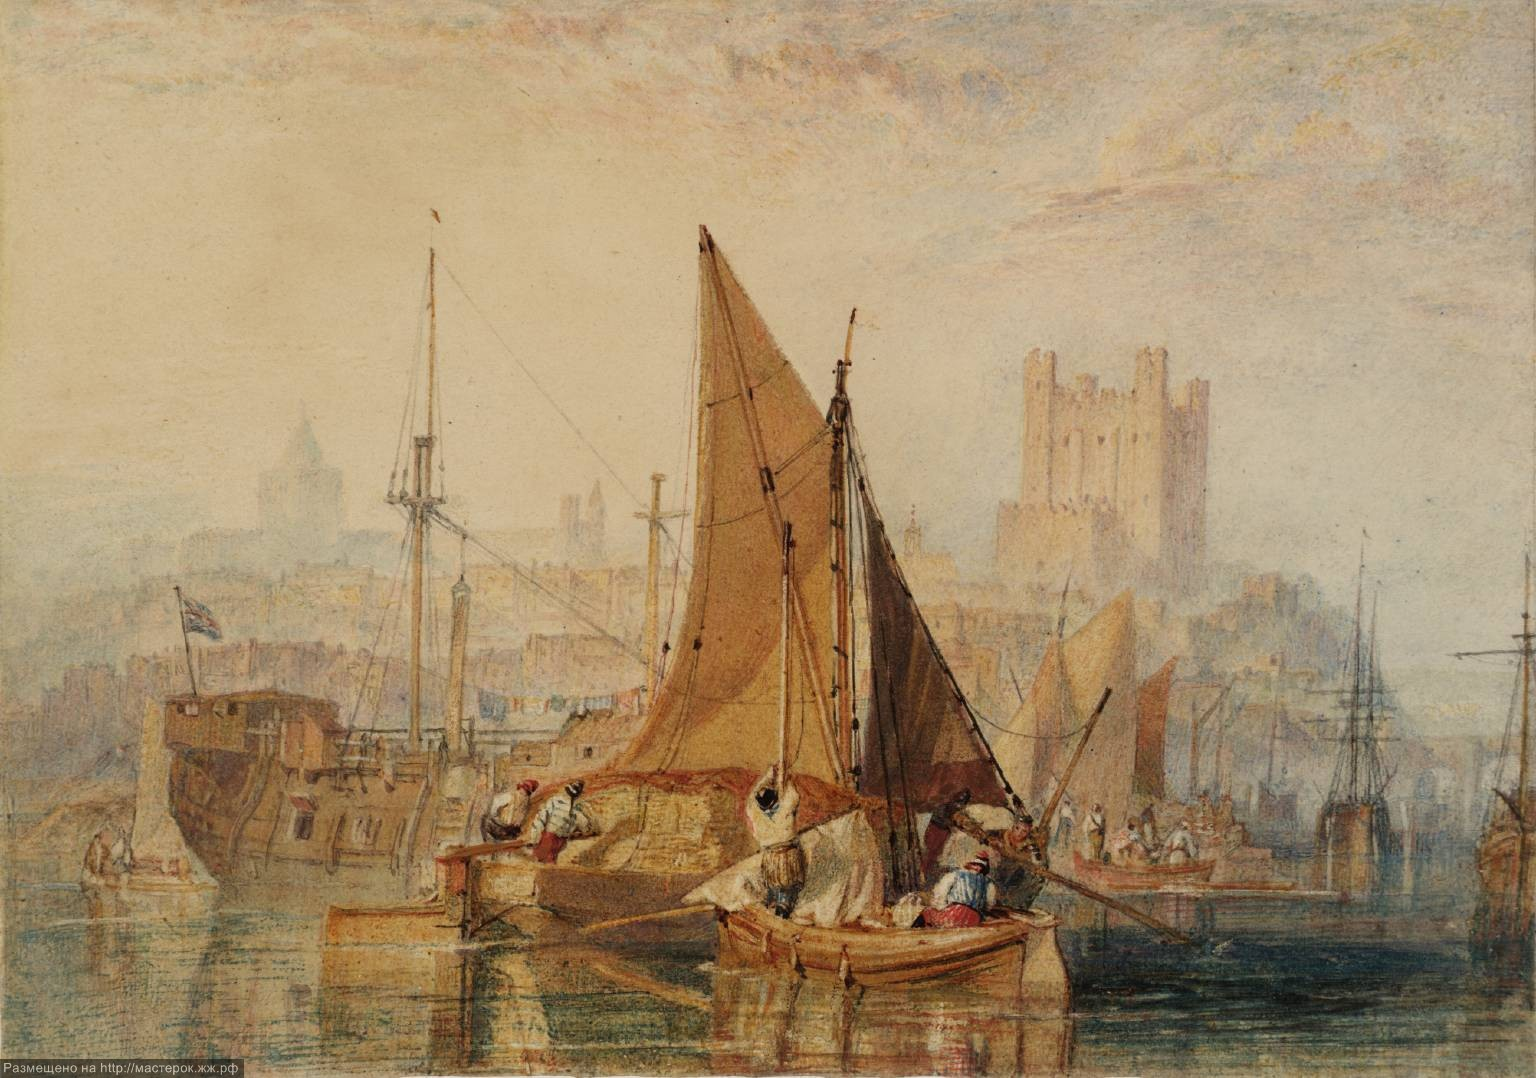 Rochester, on the River Medway 1822 by Joseph Mallord William Turner 1775-1851